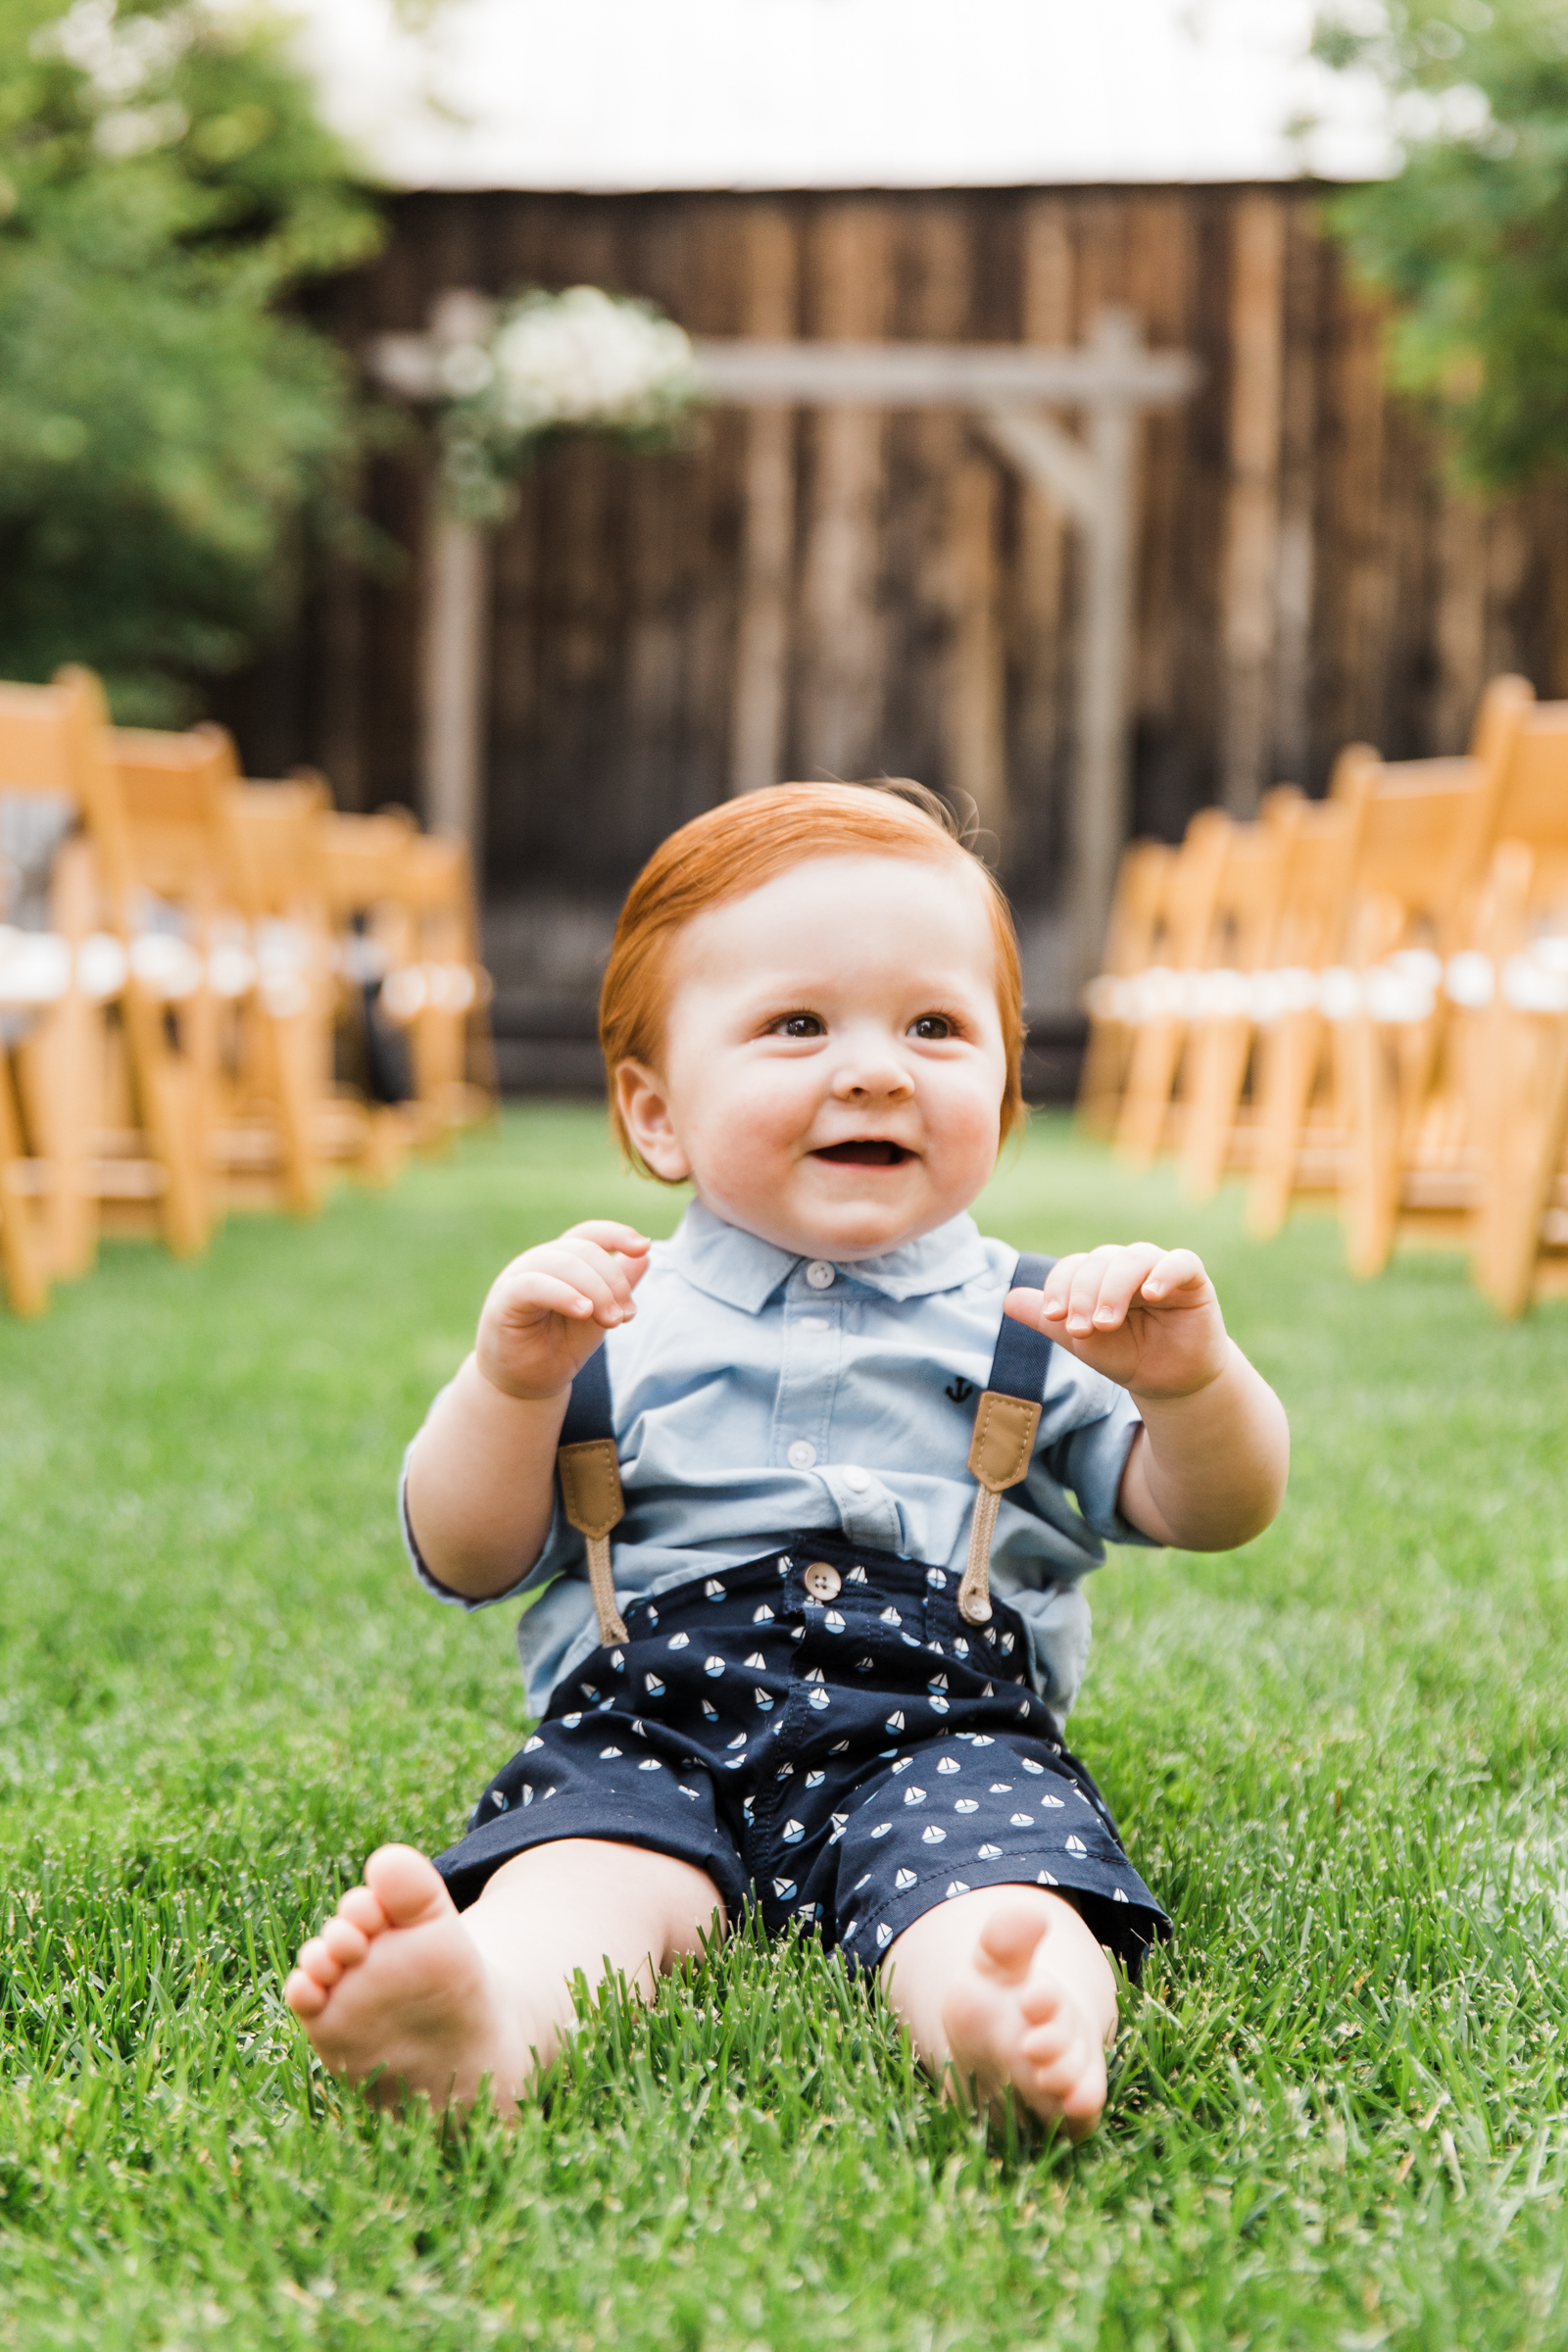 Baby in blue denim shirt, suspenders and boat design shorts - photo by Stephanie Cristalli - Seattle